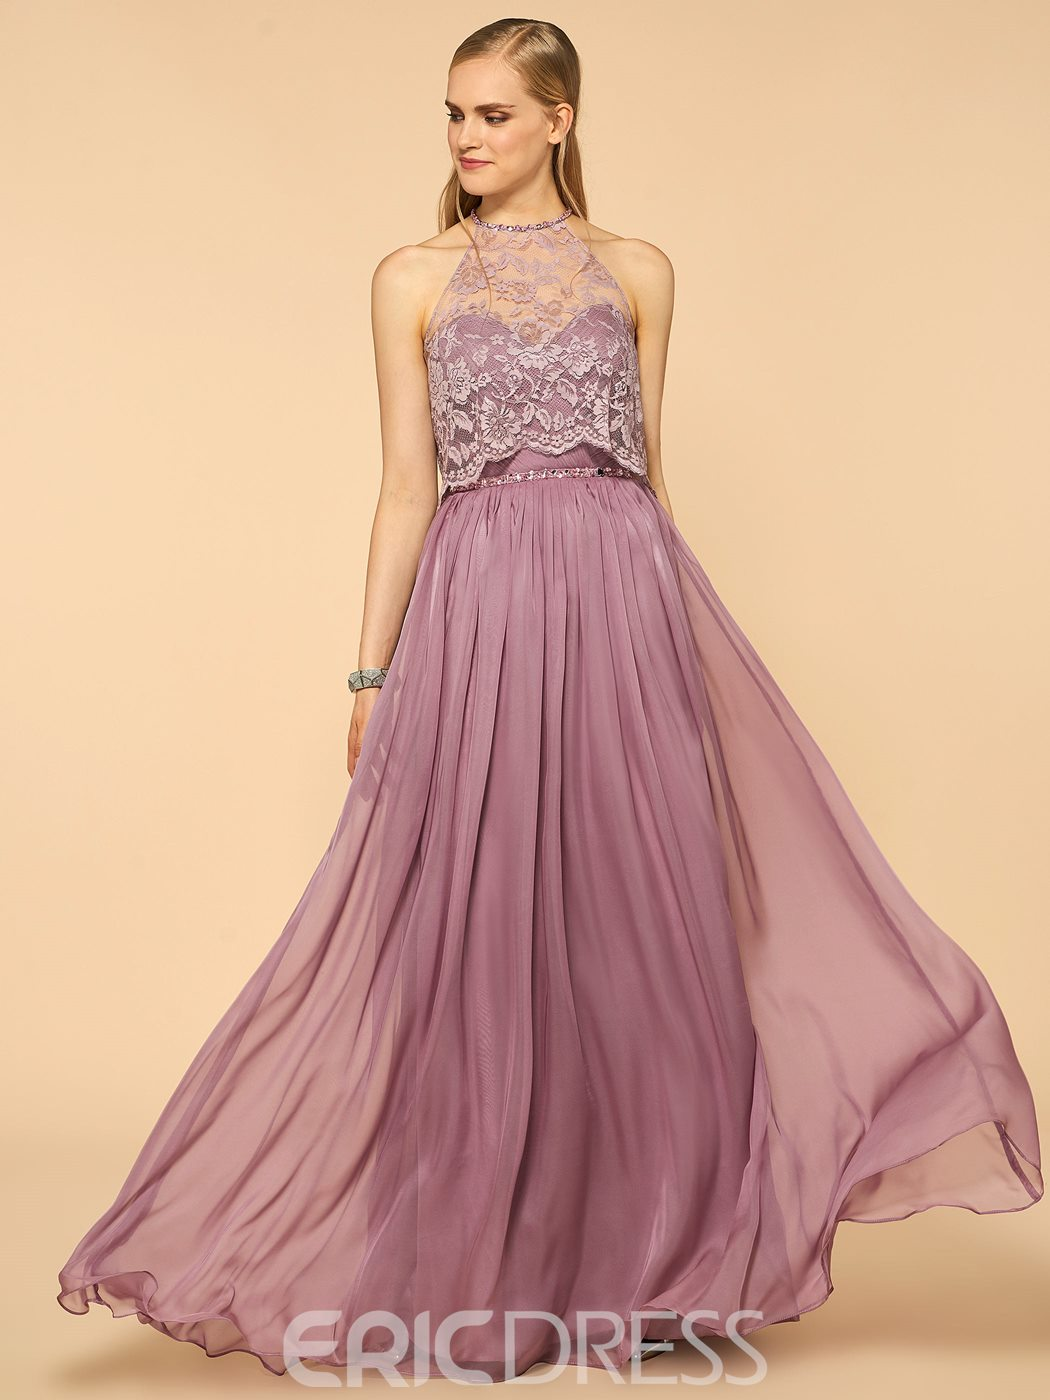 Ericdress Charming Halter Beaded Lace A Line Long Bridesmaid Dress